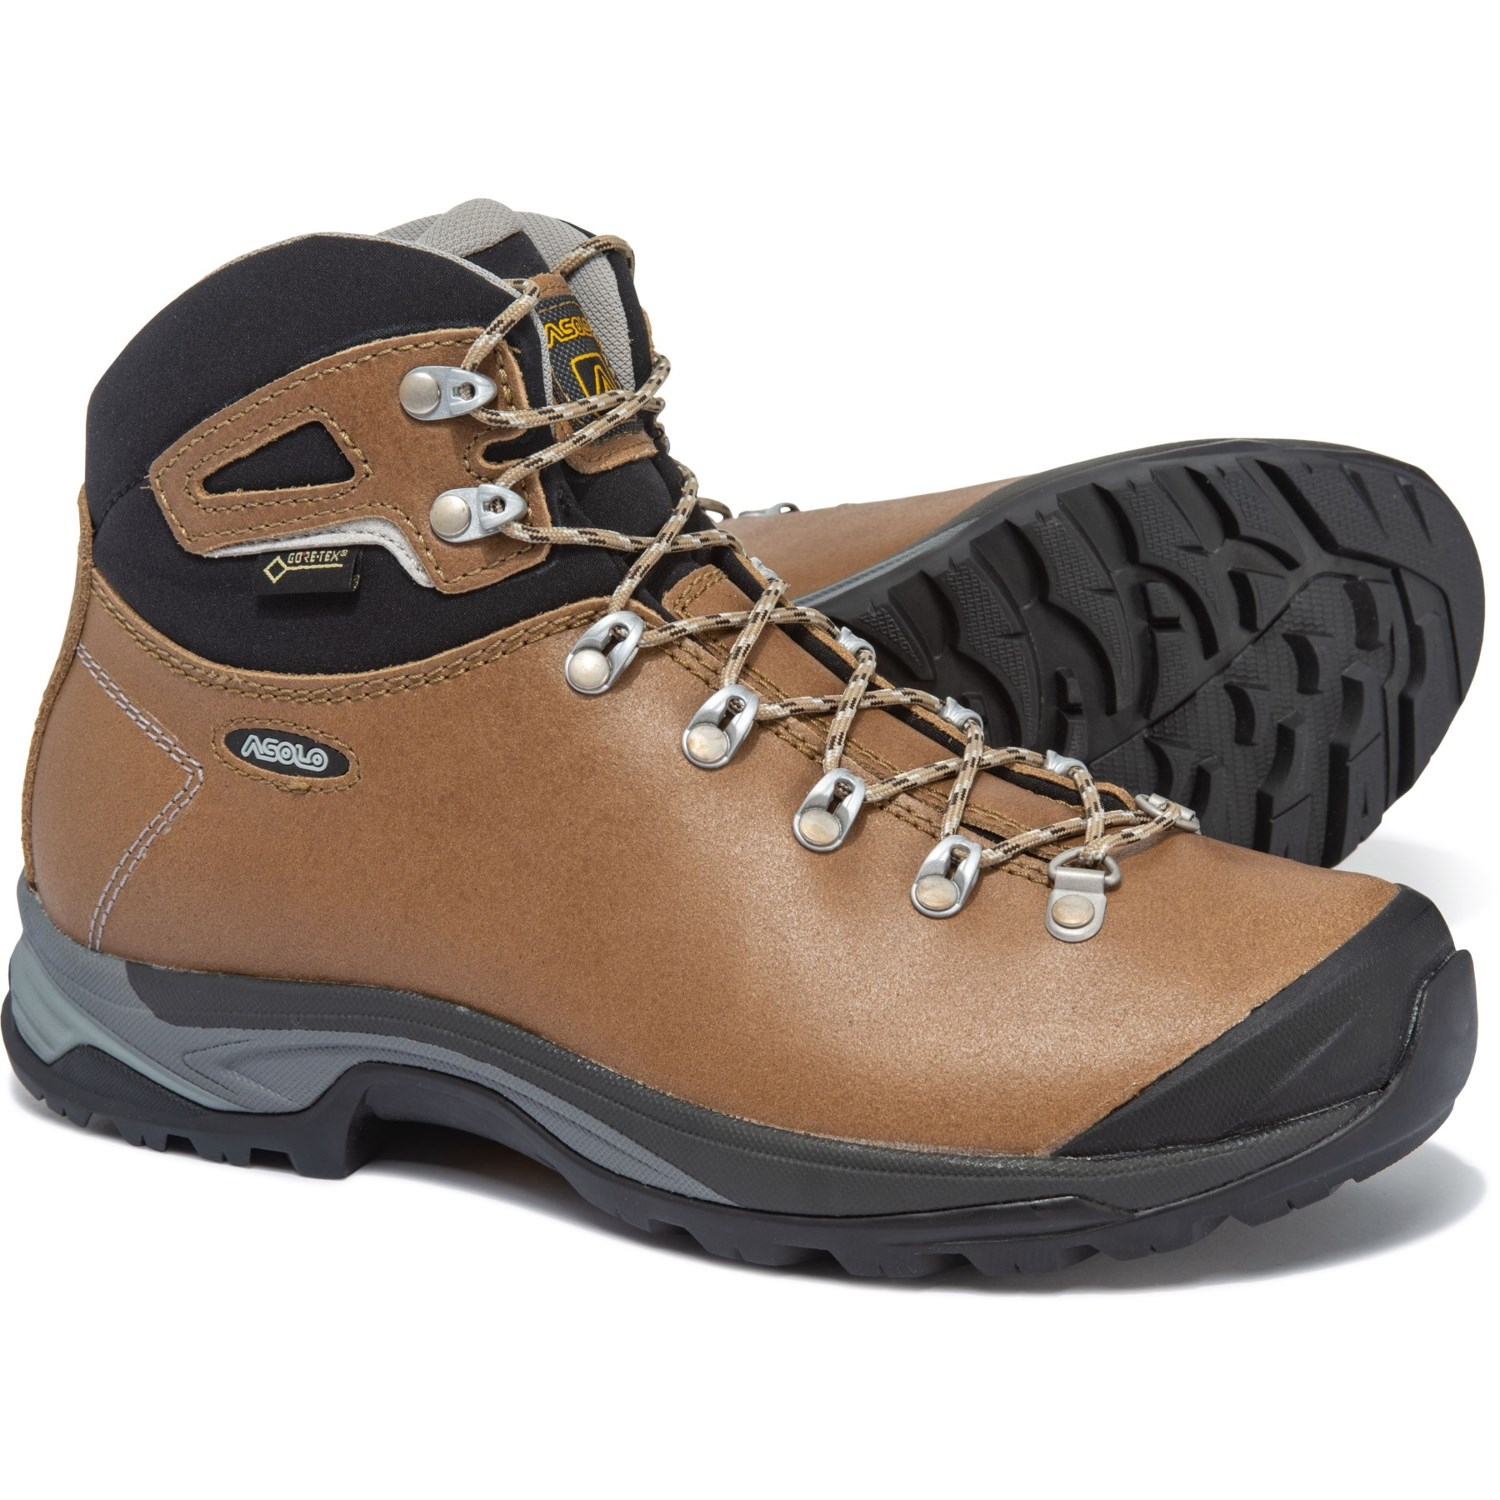 0b8b27c1a2b Asolo Made in Europe Thyrus GV Gore-Tex® Hiking Boots - Waterproof (For  Women)